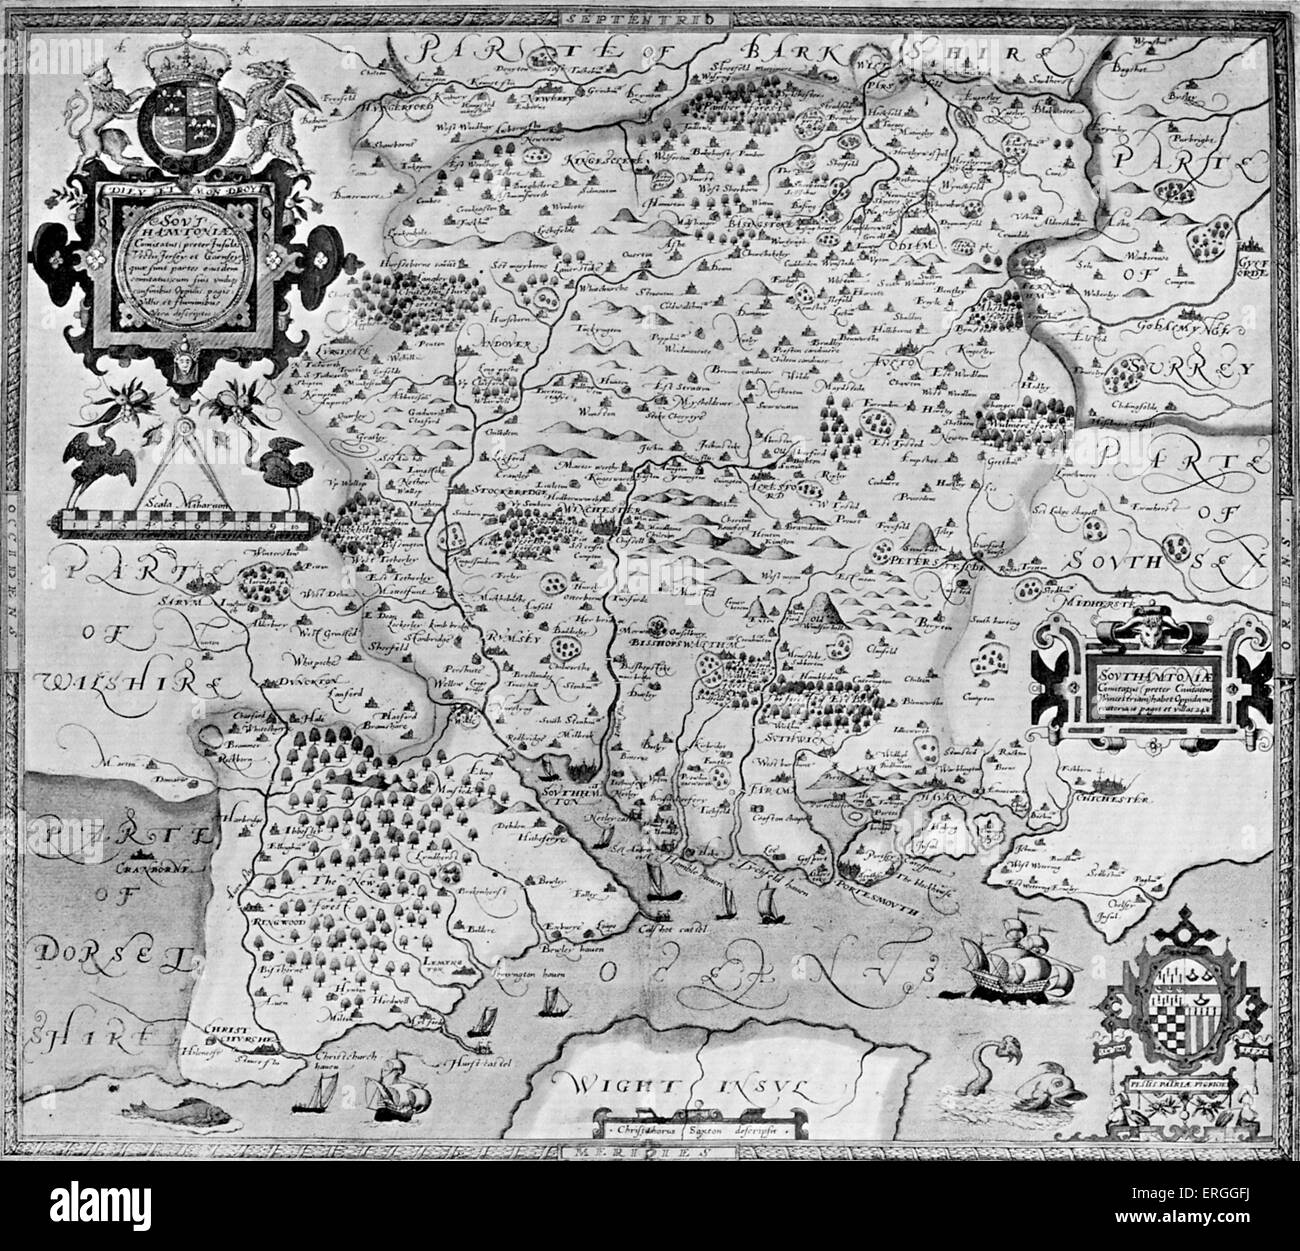 Map of the County of Southampton, England in Christohper Saxton 's 'Atlas of the Counties of England', - Stock Image